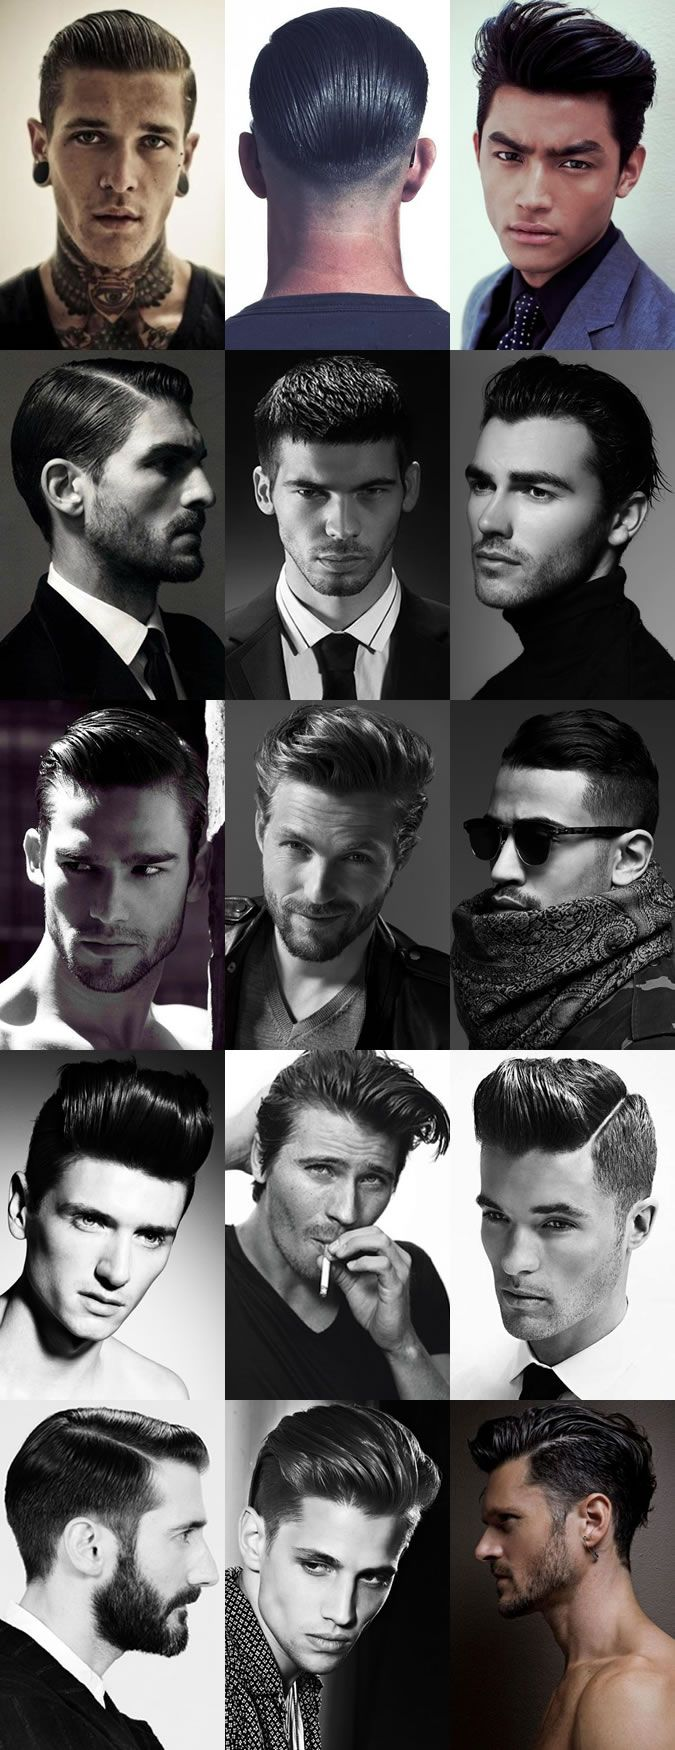 Men's Sheen, High Shine and Wet Look Hairstyles